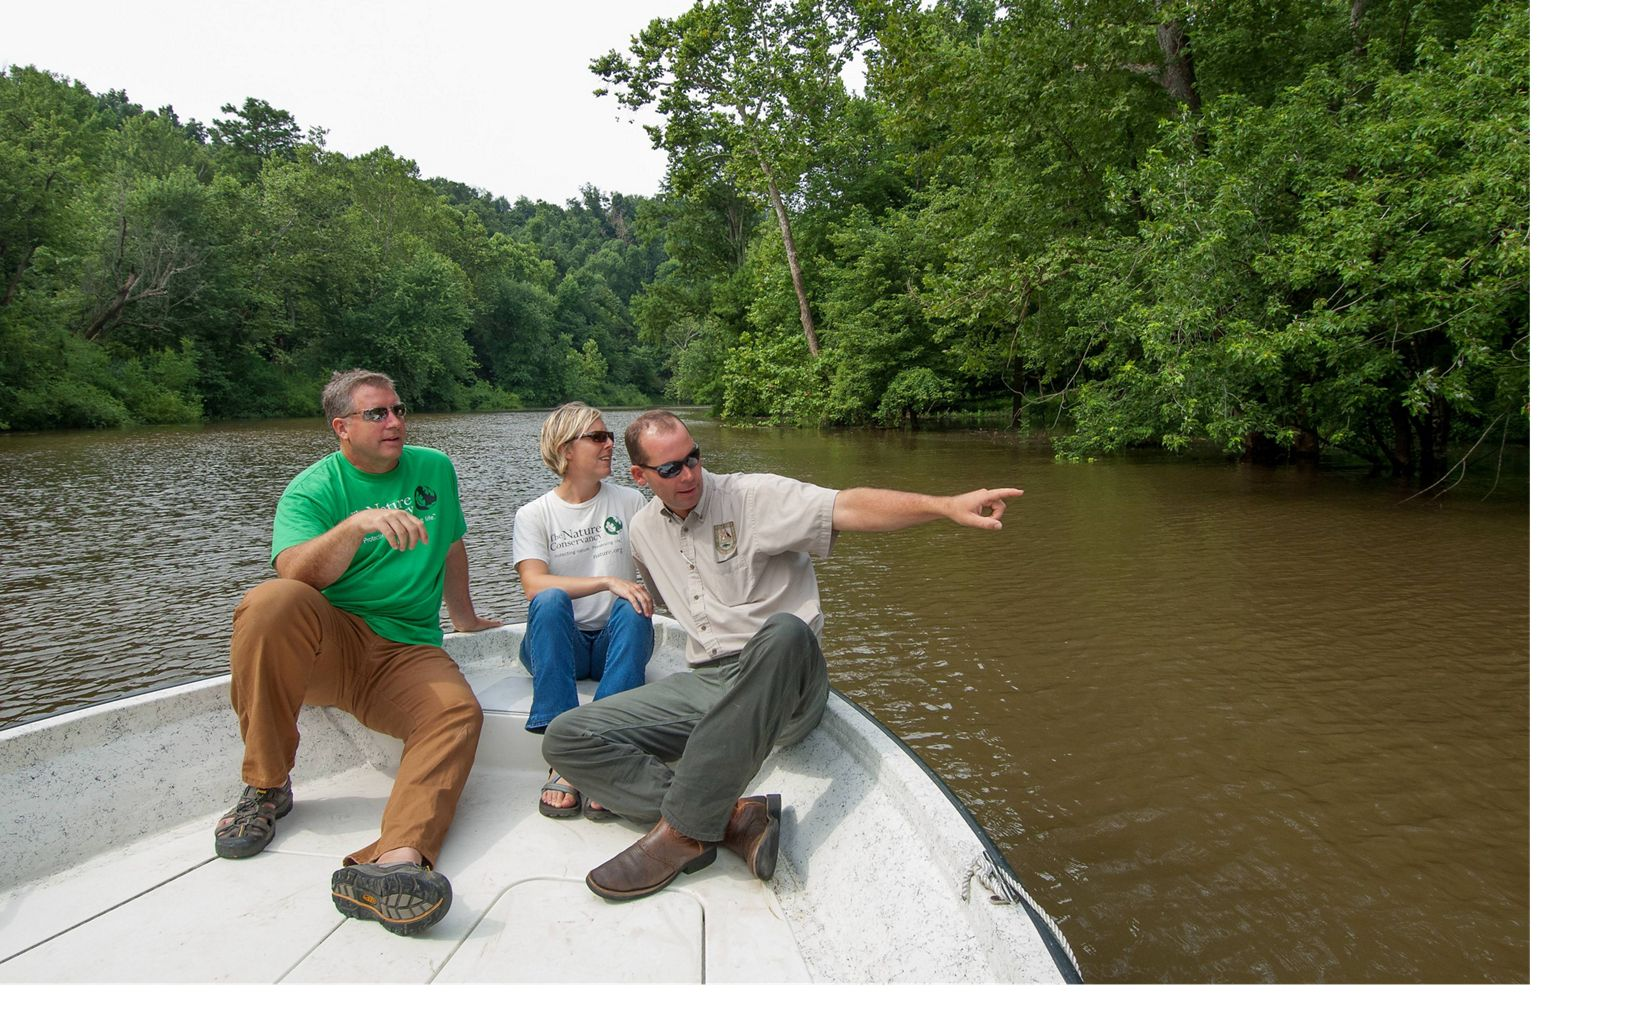 Using a small boat to navigate along the banks of the Ohio and Tradewater Rivers, staff from The Nature Conservancy and the Kentucky Department of Fish and Wildlife tour the Big Rivers  Phase II project located at the confluence of the two rivers in Crittenden County, Kentucky. The project will protect 4,285 acres providing watershed and water quality protection as well as guarding endangered, threatened and rare species recovery. Photographed from left to right; Terry Cook (the Conservancy's Kentucky State Director), Shelly Morris (Western Kentucky Project Director for the Conservancy), and Curt Devine (with the Kentucky Department of Fish and Wildlife).